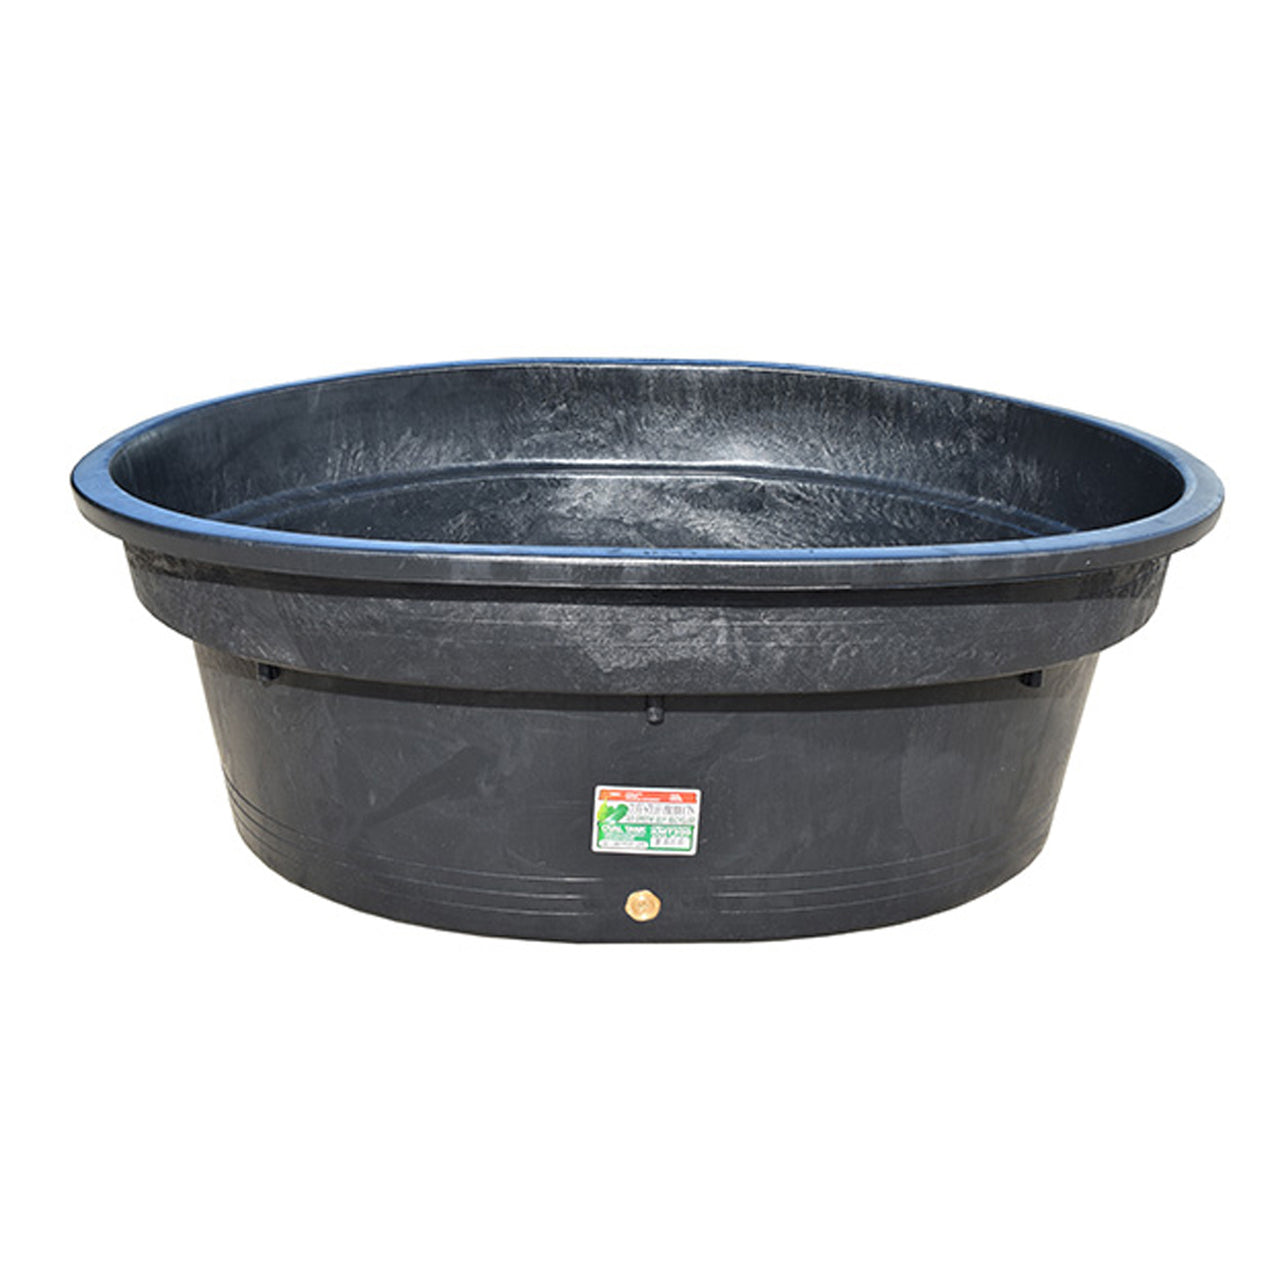 Tuff Stuff Oval Tank With Plug 180 Gal - Tanks Drums Tuff Stuff - Canada